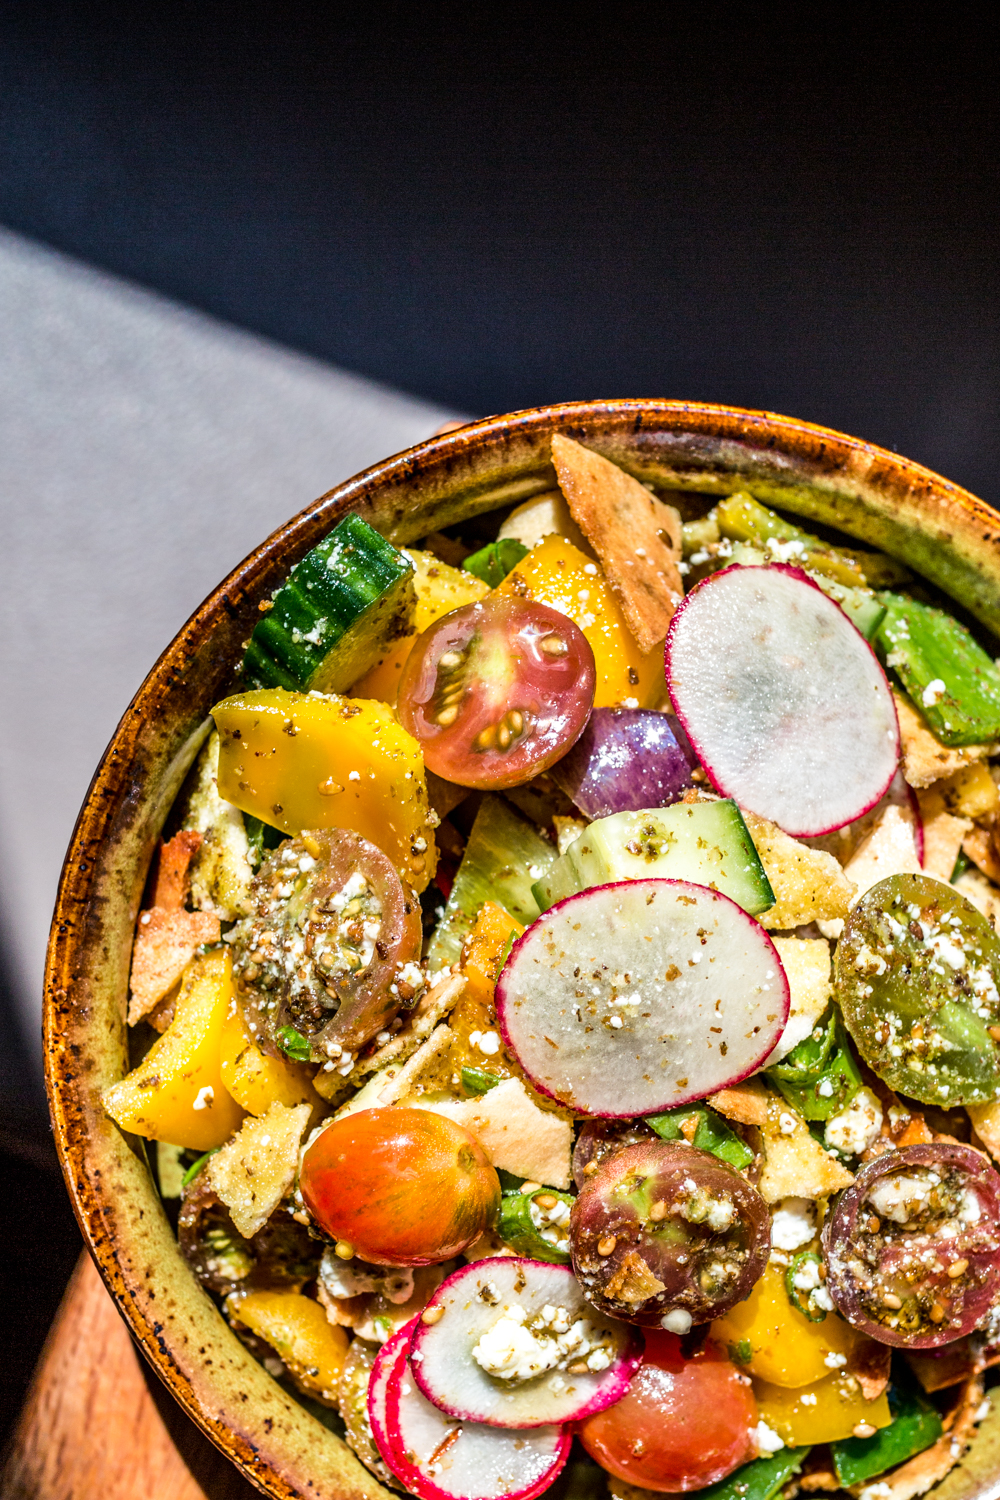 Fattoush 2.0: yellow peppers, radish, tomato, scallion, cucumber, za'atar, warm pita, cheese, and lemon / Image: Catherine Viox // Published: 9.30.19